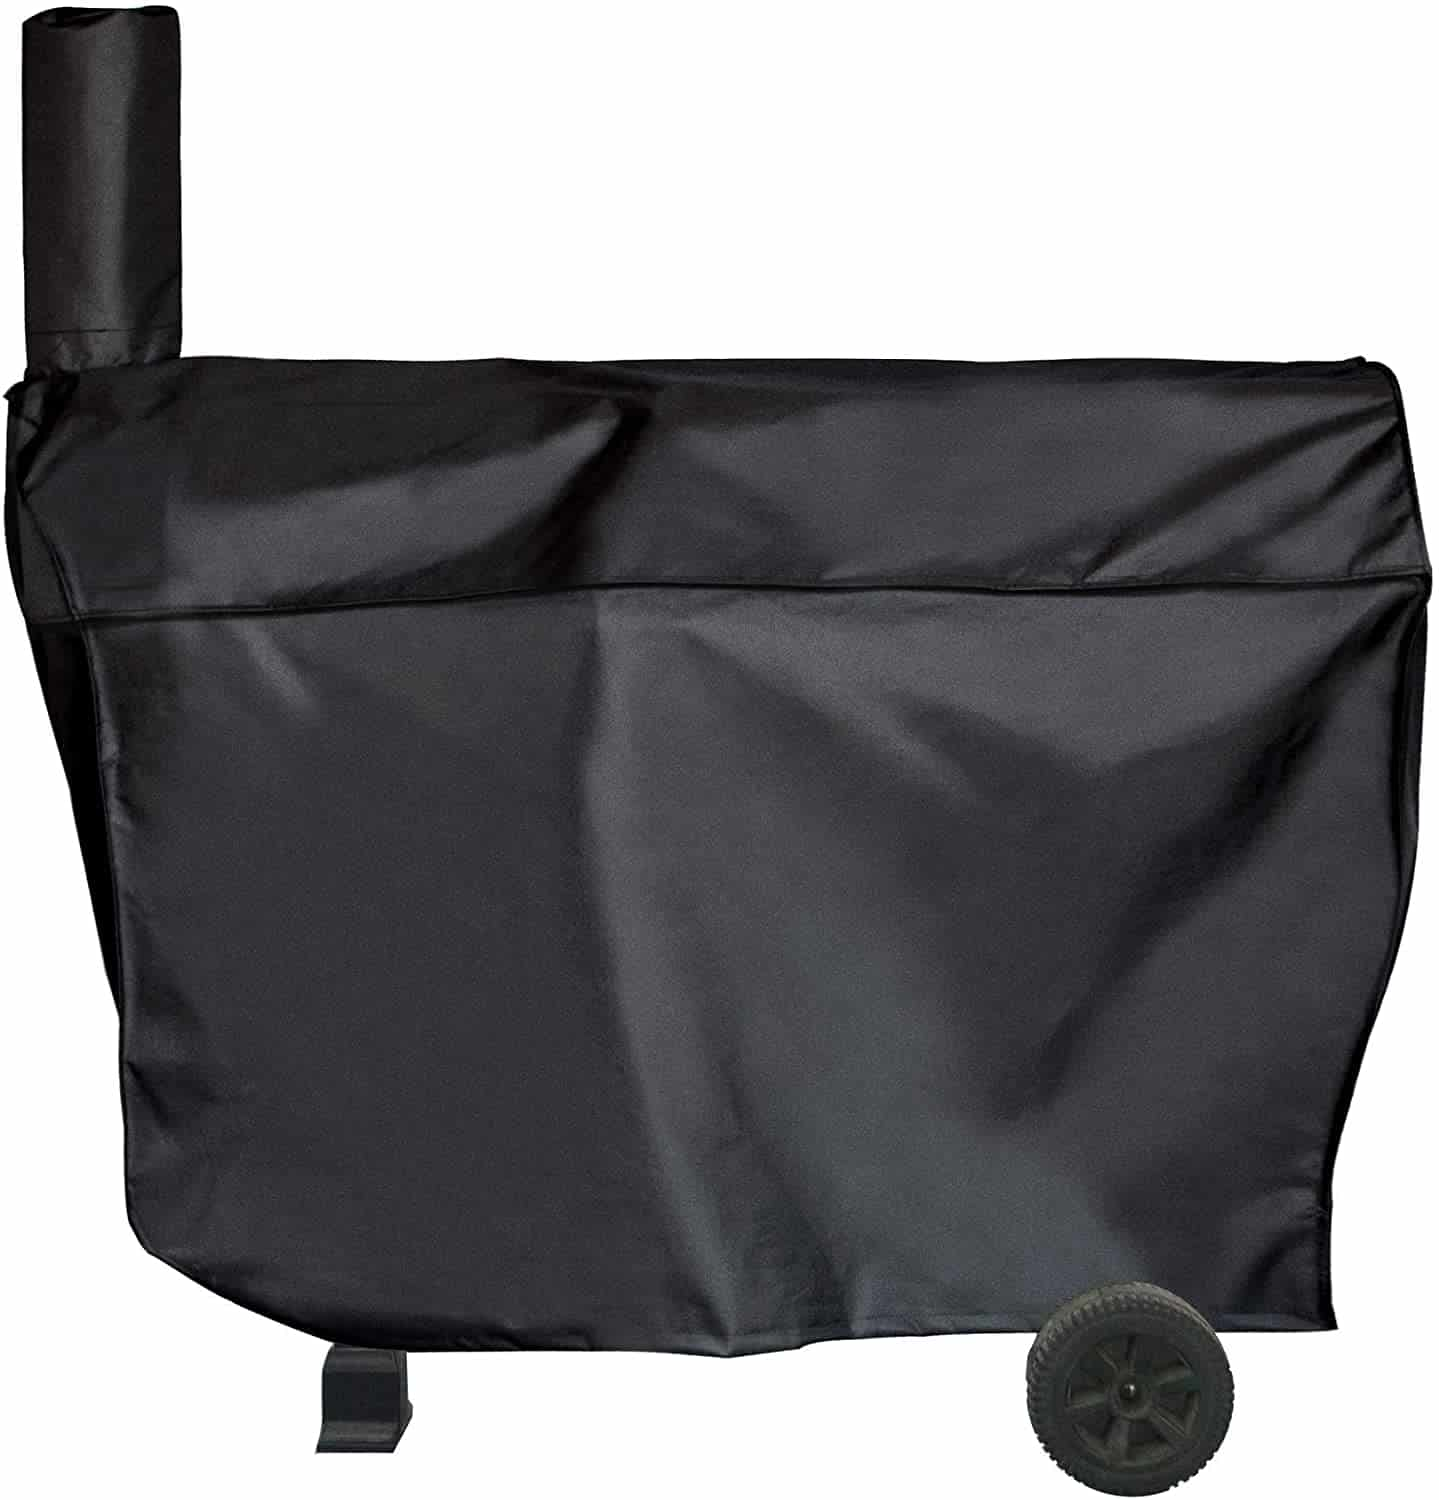 Best smoker insulation cover: i COVER